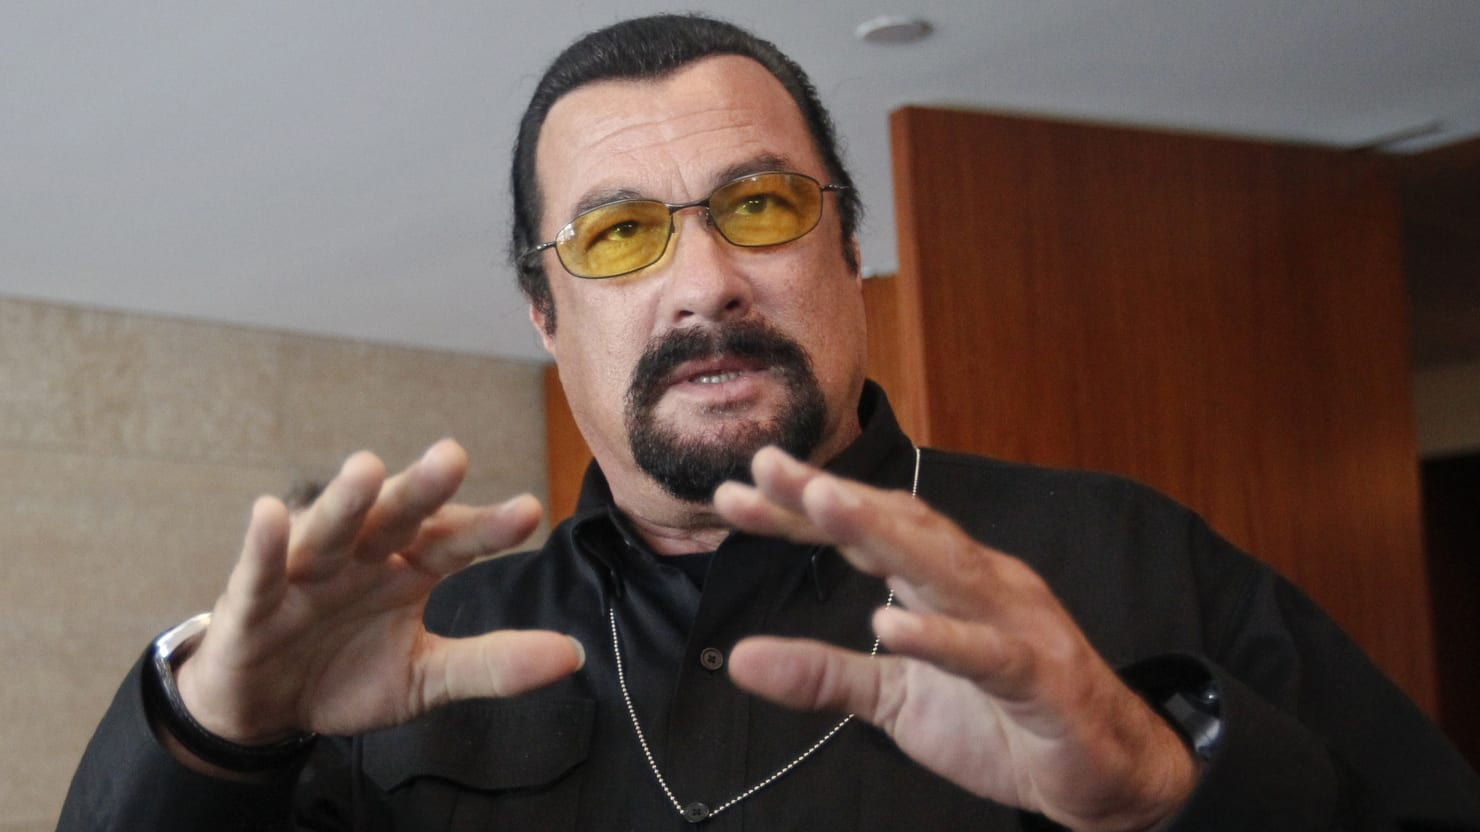 Steven Seagal Charged With Illegally Promoting Cryptocurrency